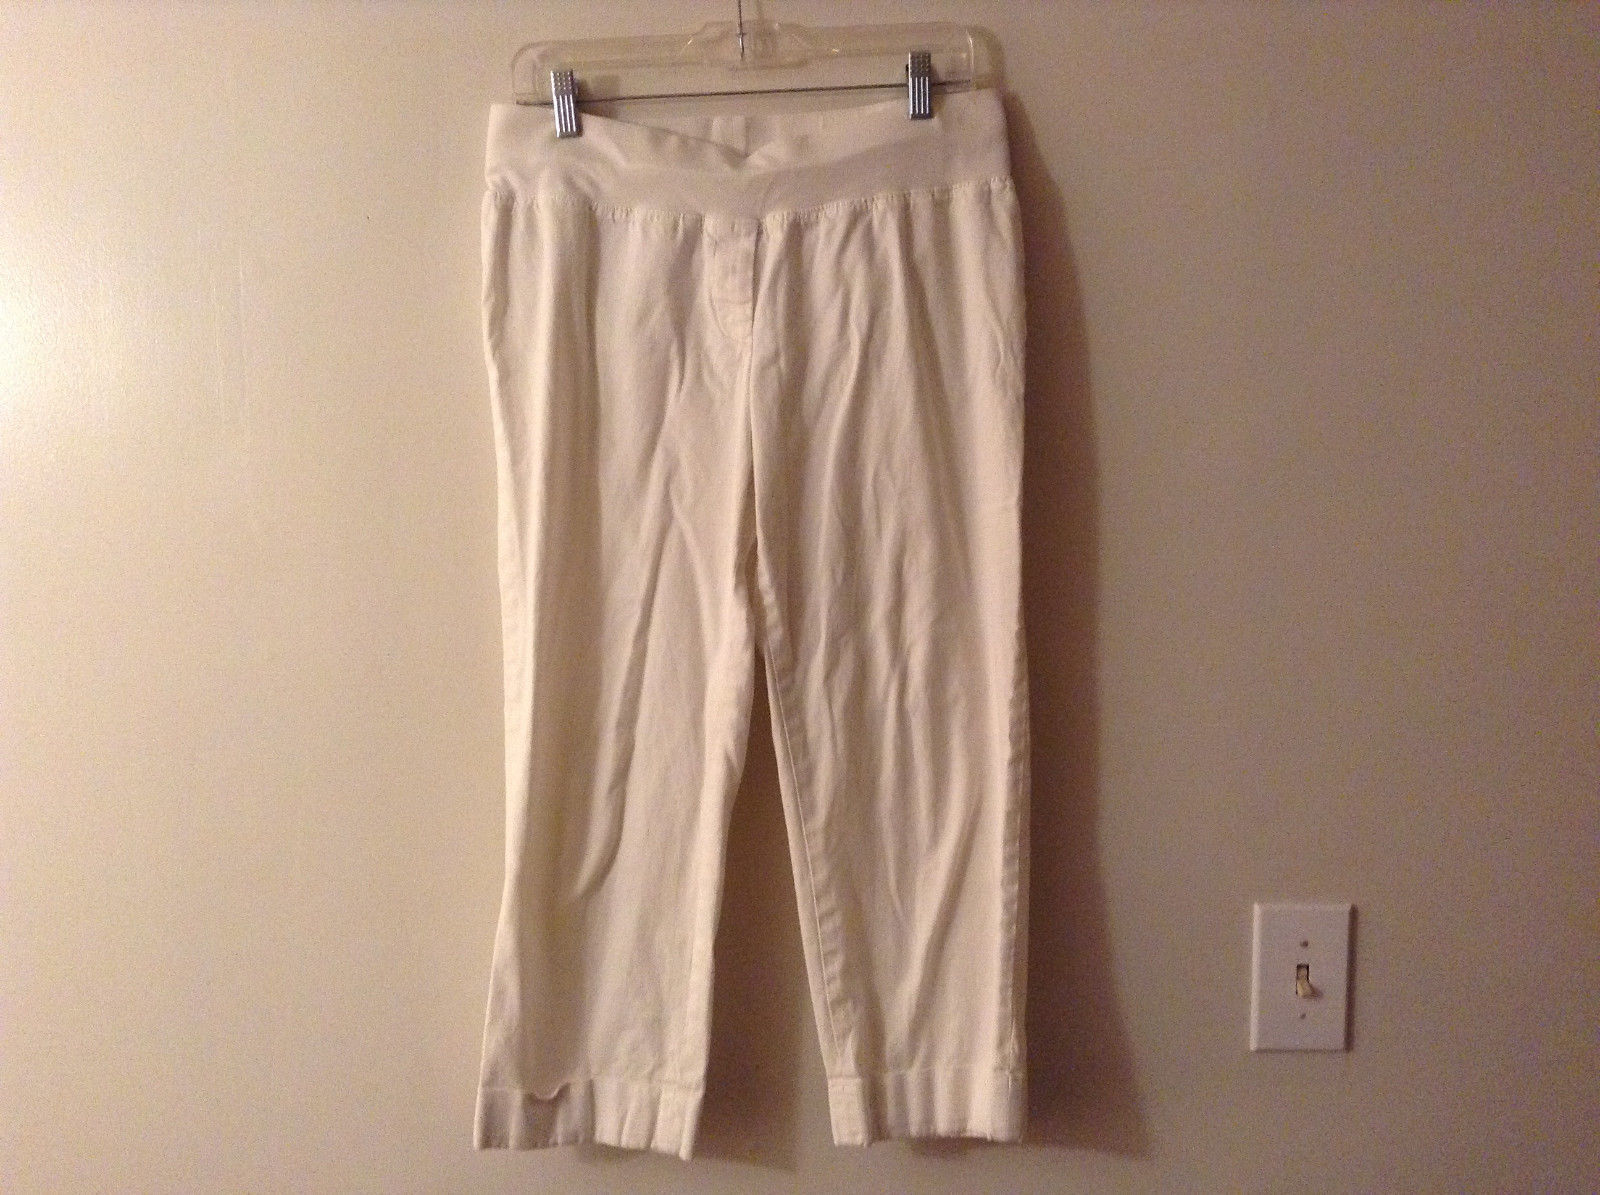 Ann Taylor LOFT Maternity Women's Size 6 6M Pants Cropped White Stretchy Waist